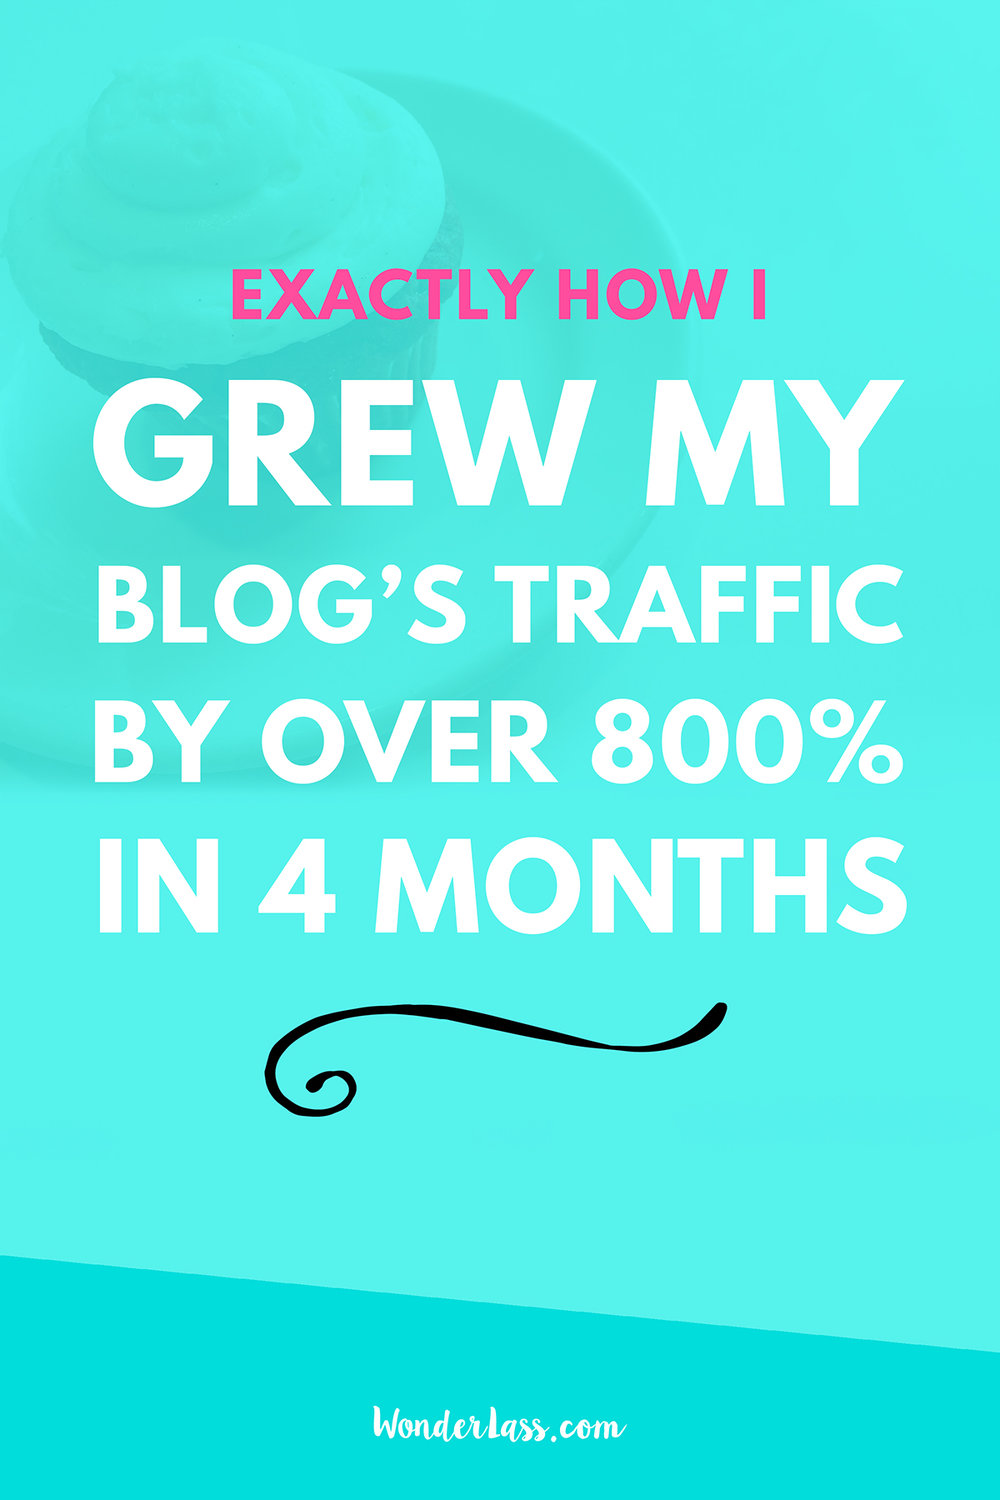 How I Grew My Blog Traffic Over 800% in 4 Months (& You Can too!) | Wonderlass